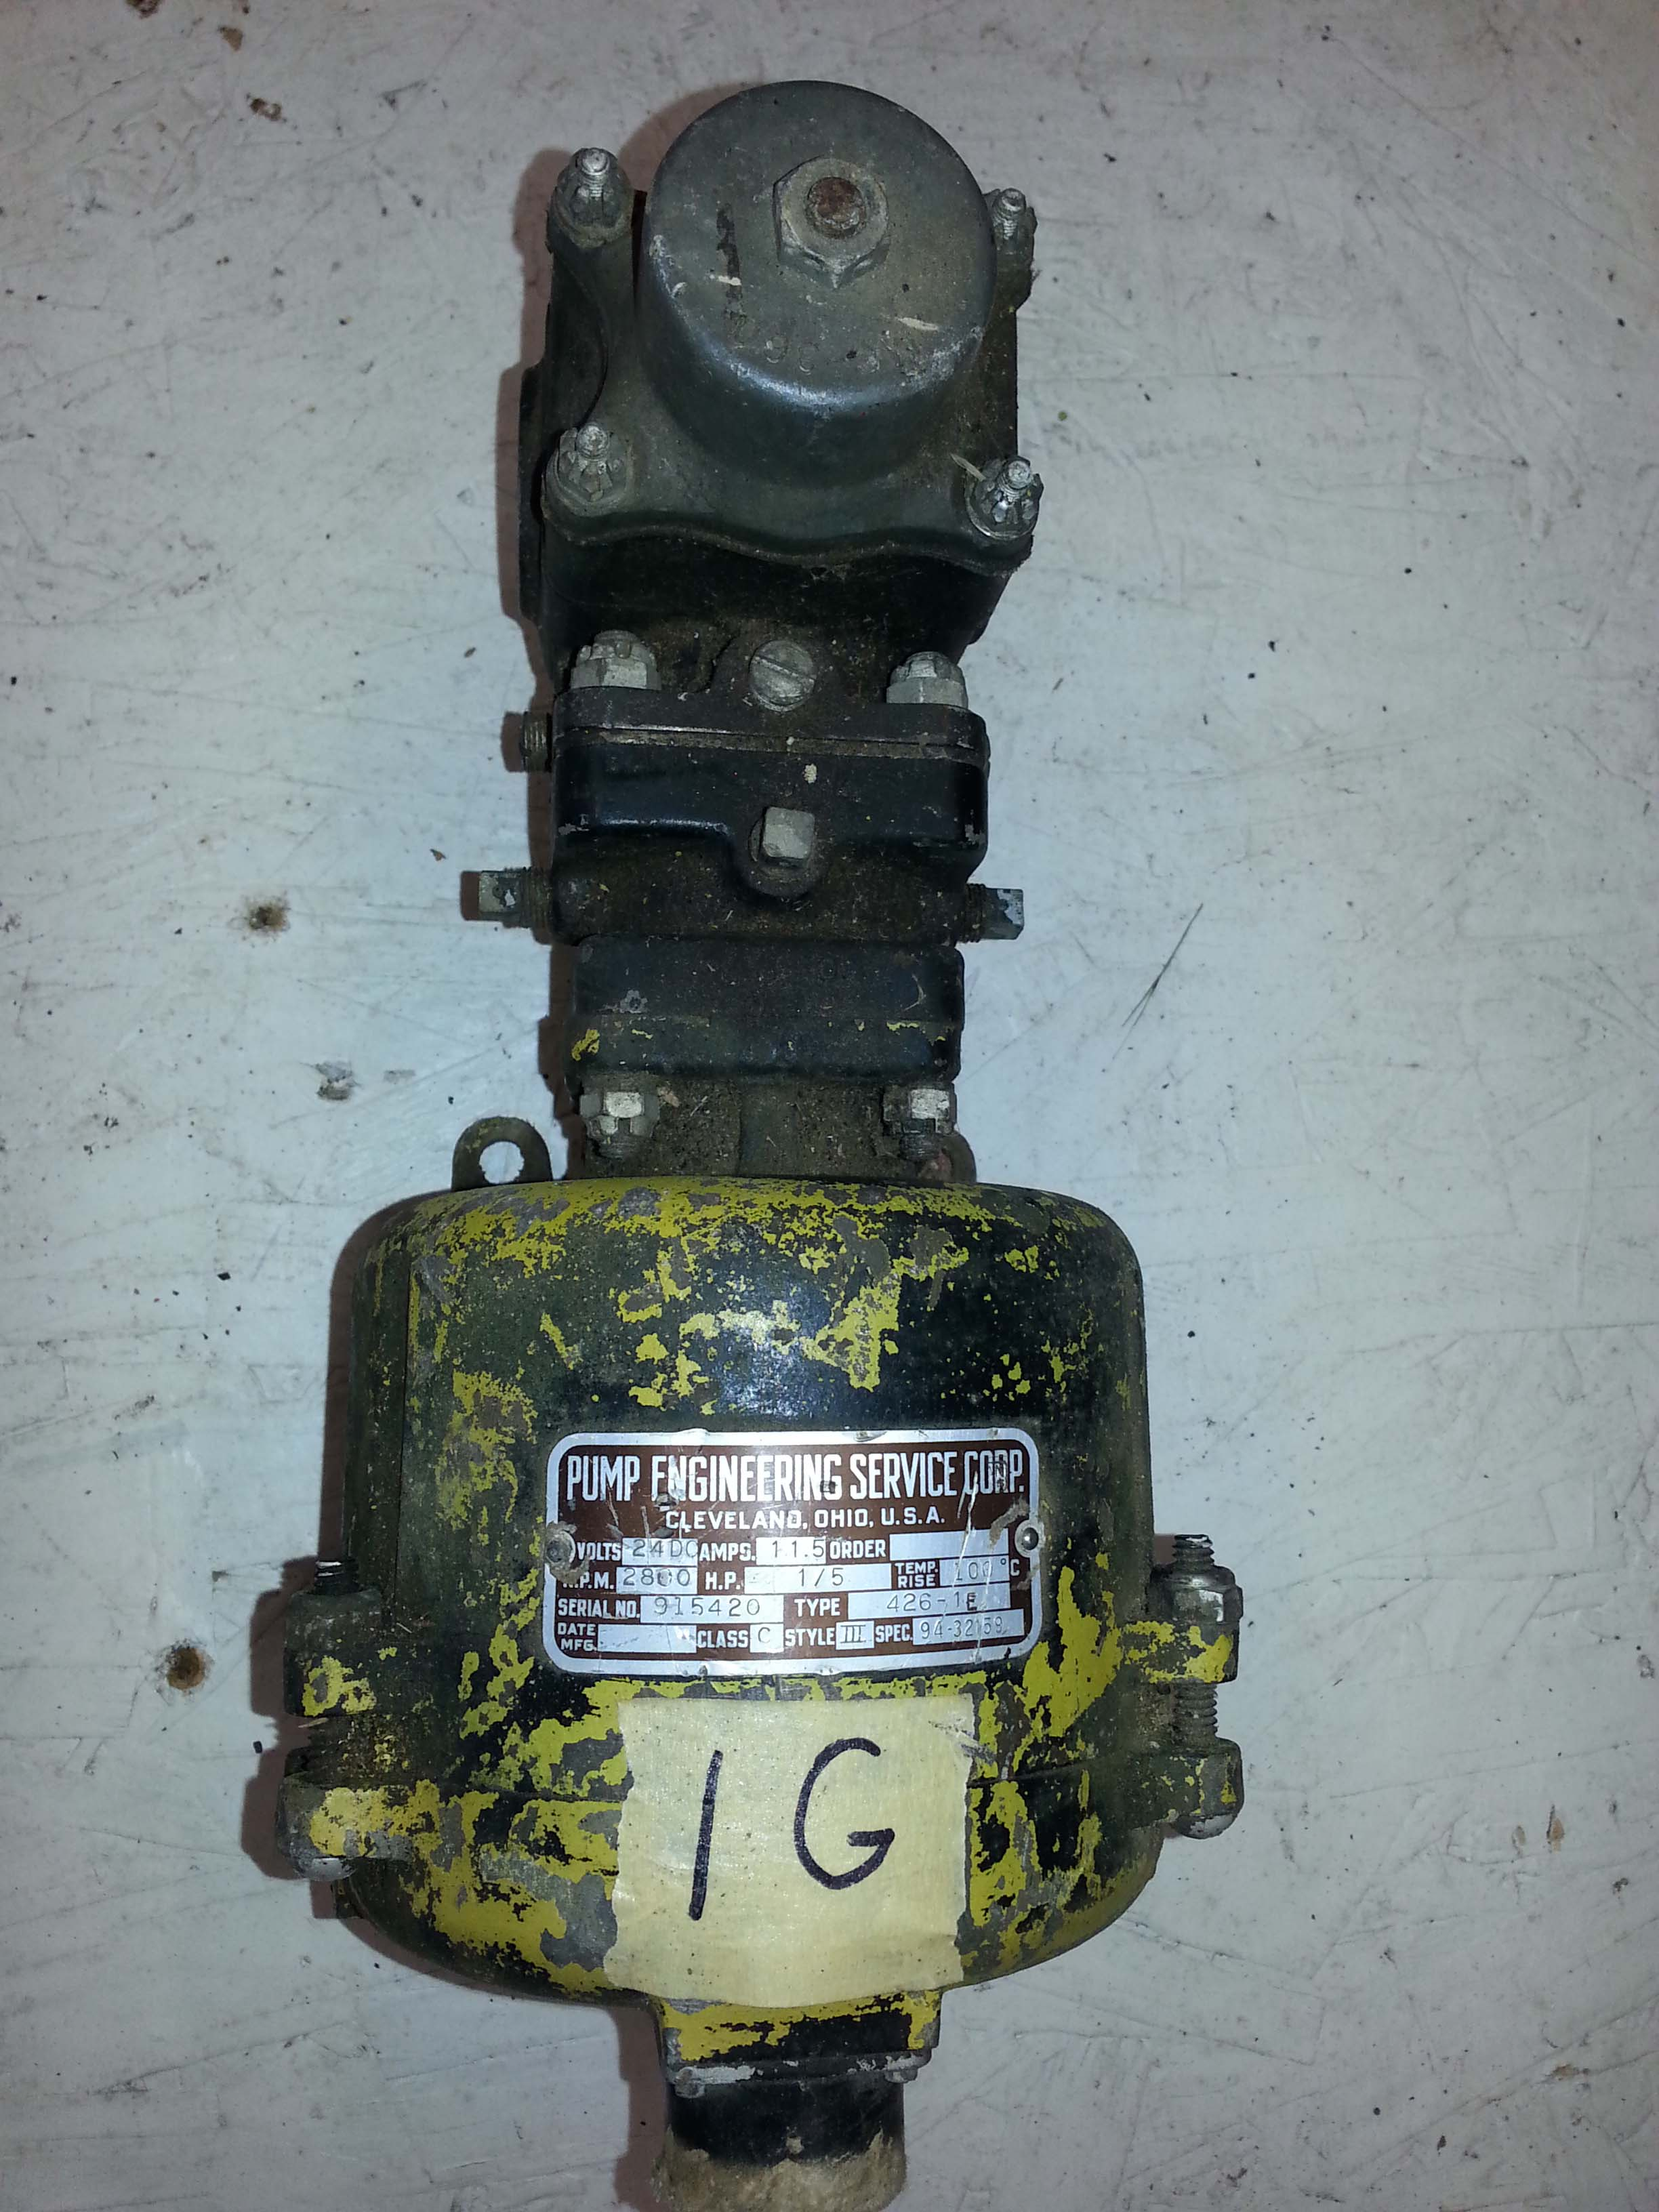 Fuel Pump Motor Engineering Service Corp 1 5 Hp The Specification 1g